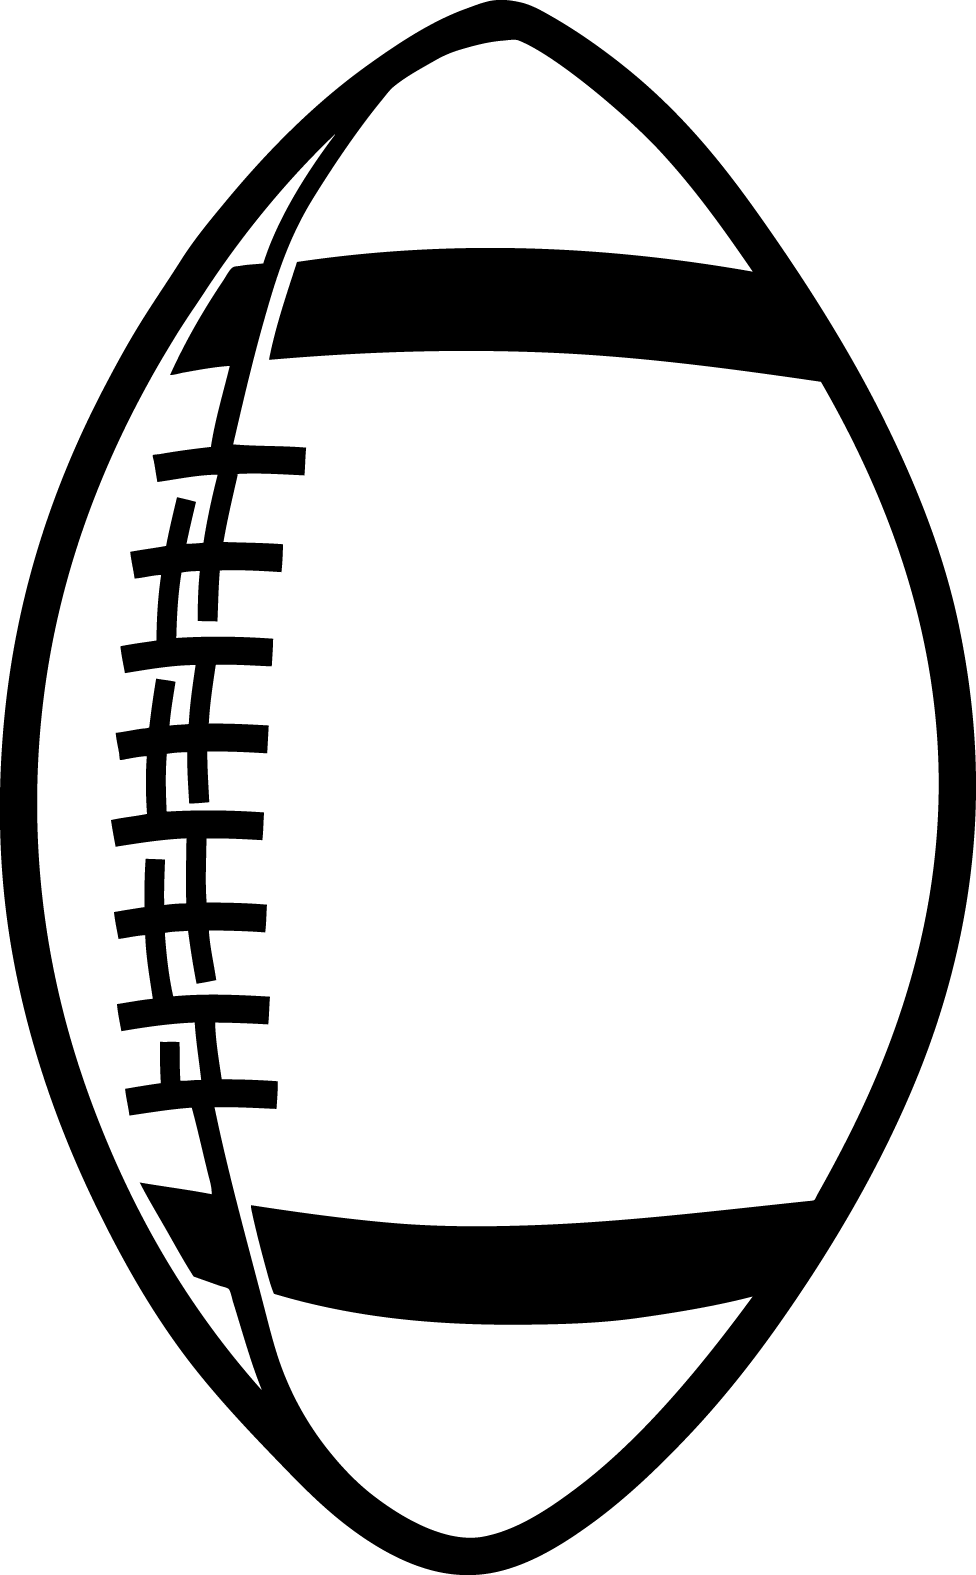 Football simple. Best laces clip art